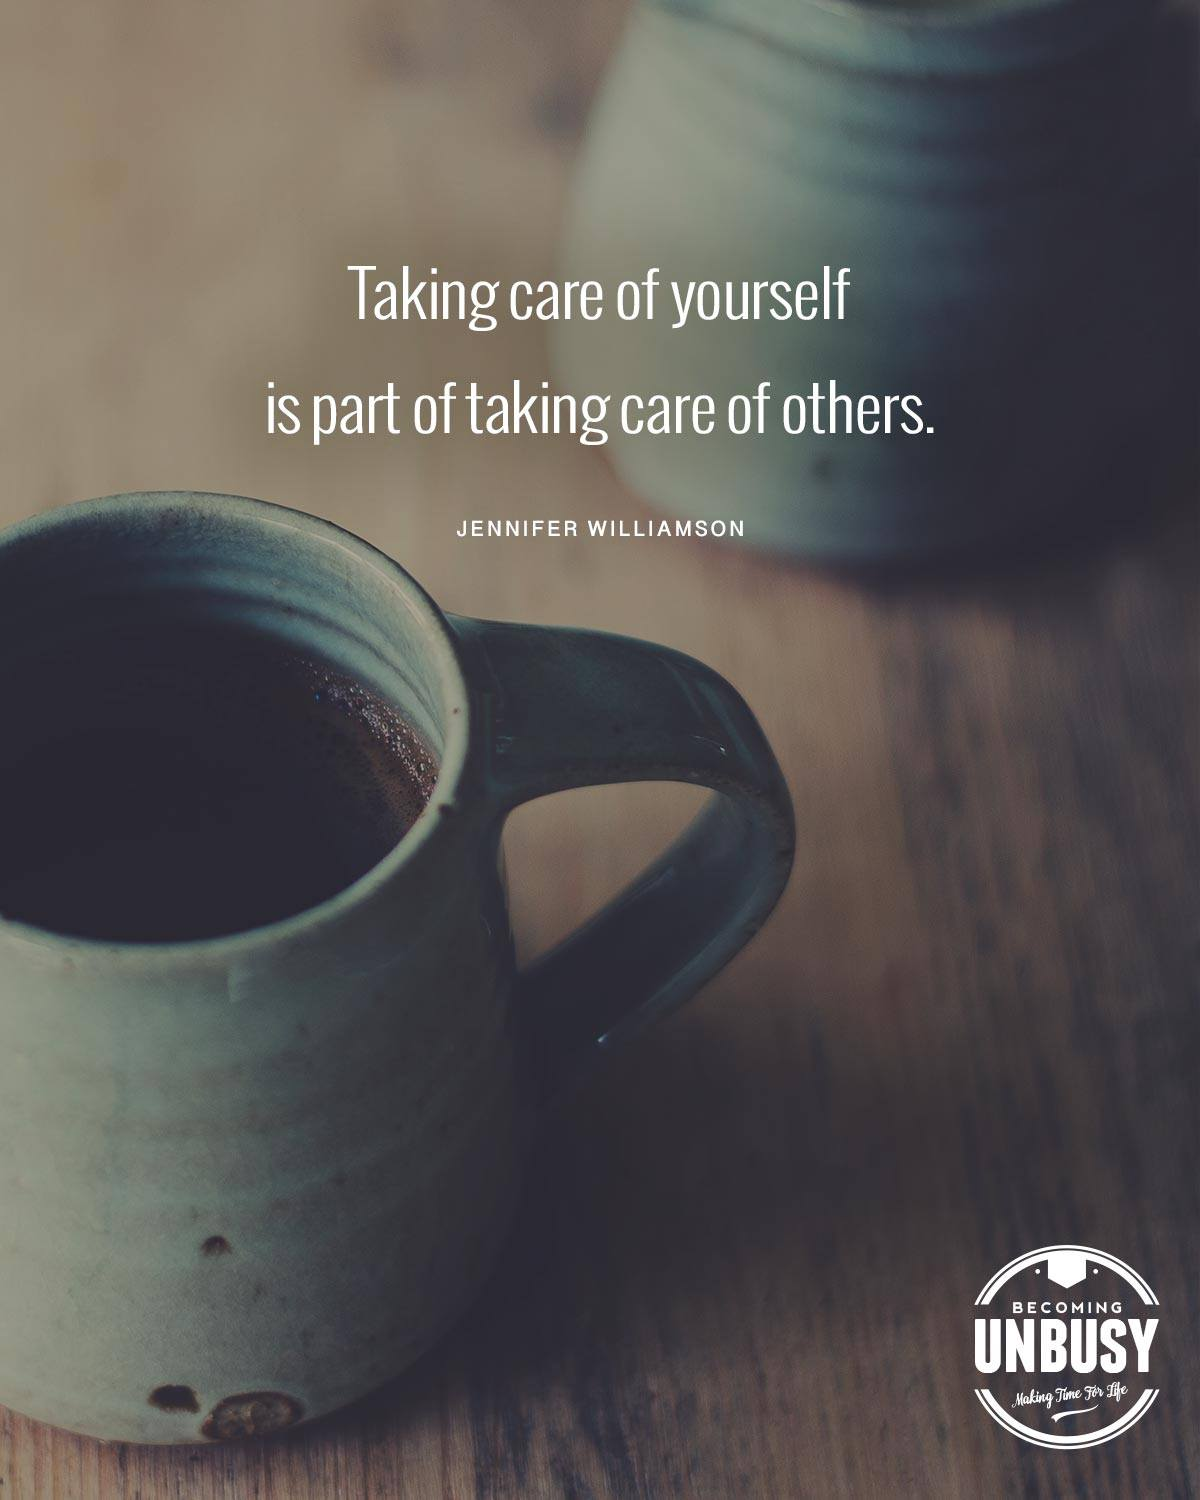 """A coffee mug and the self-care quote """"Taking care of yourself is part of taking care of others."""" by Jennifer Williamson"""